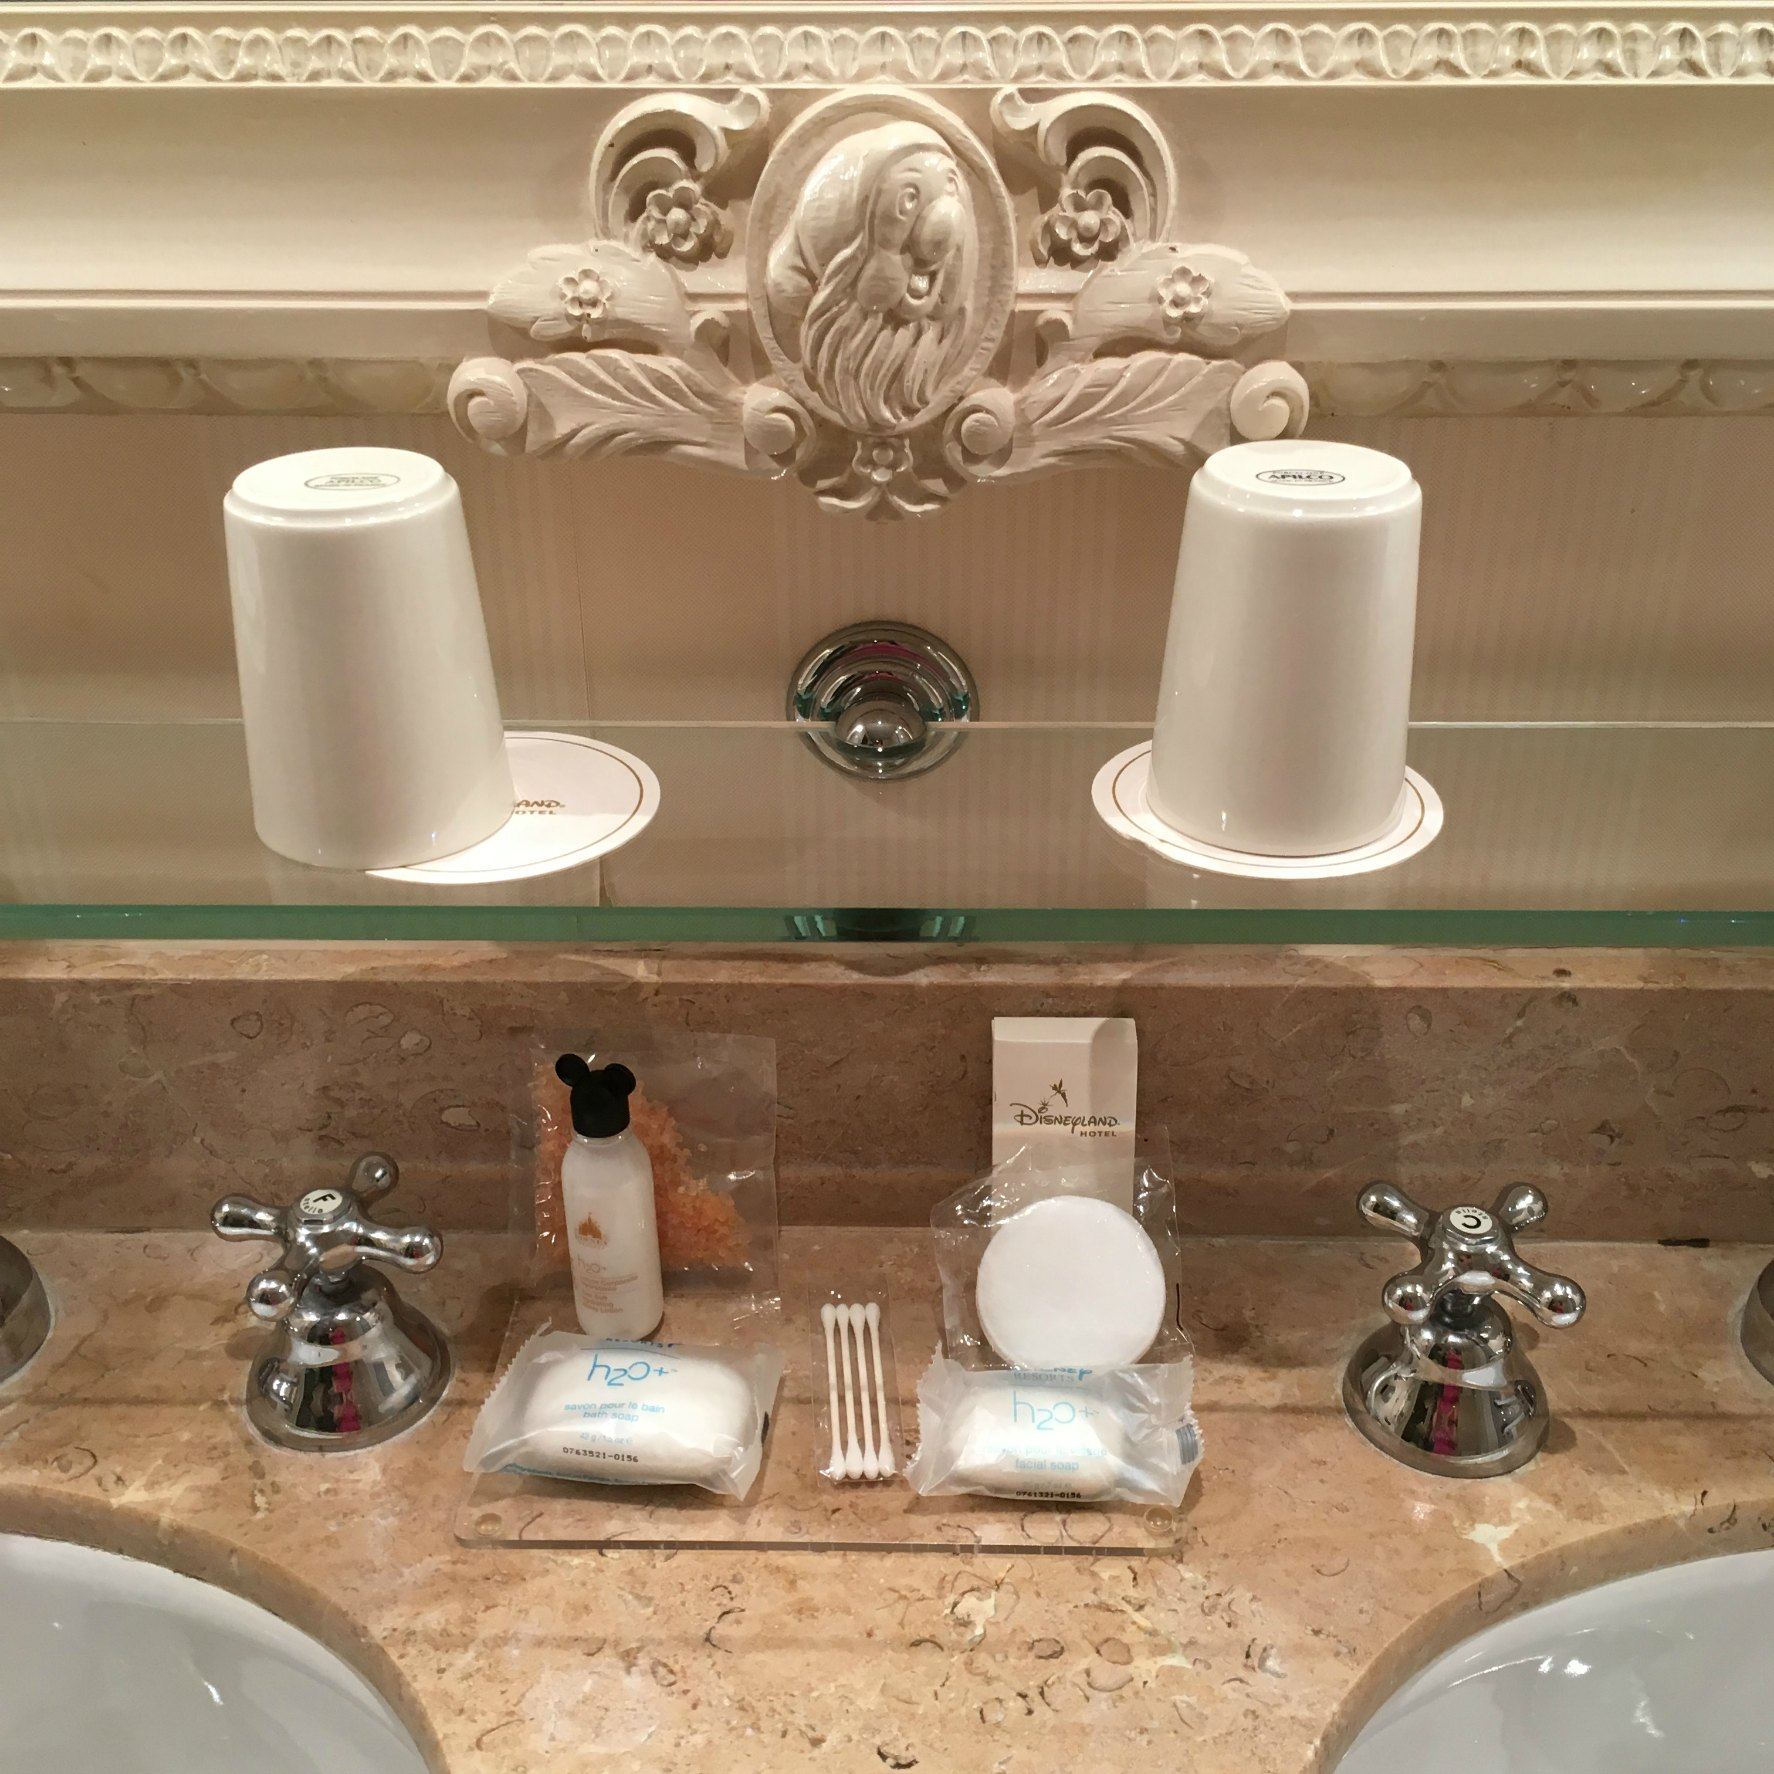 Disneyland hotel bathroom